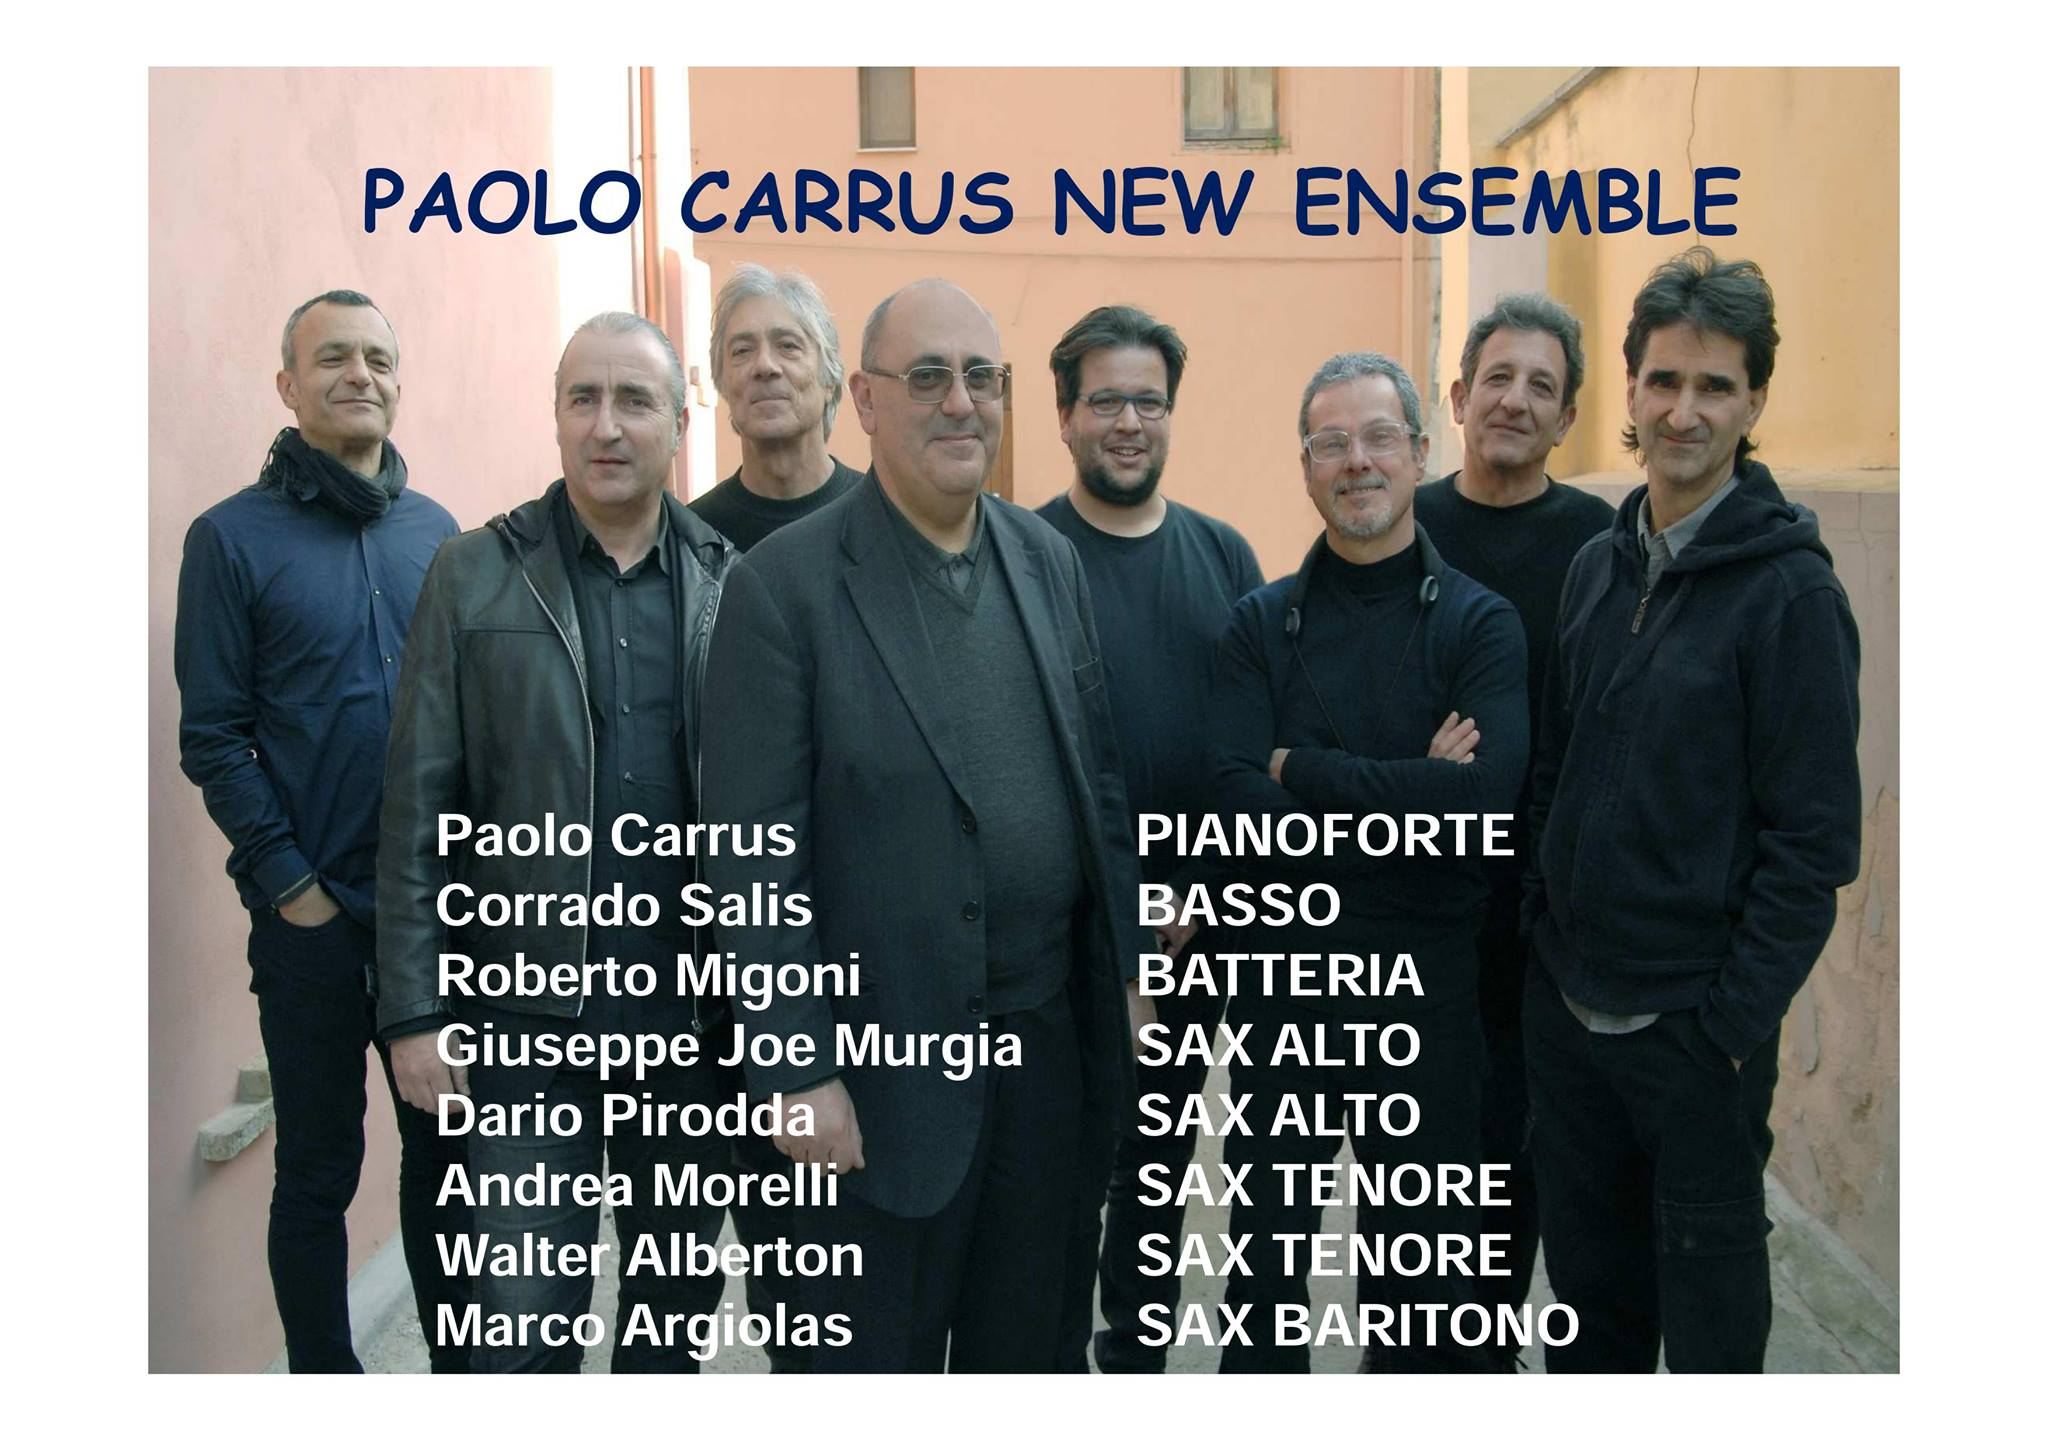 SERATA MUSICALE CON PAOLO CARRUS NEW ENSEMBLE